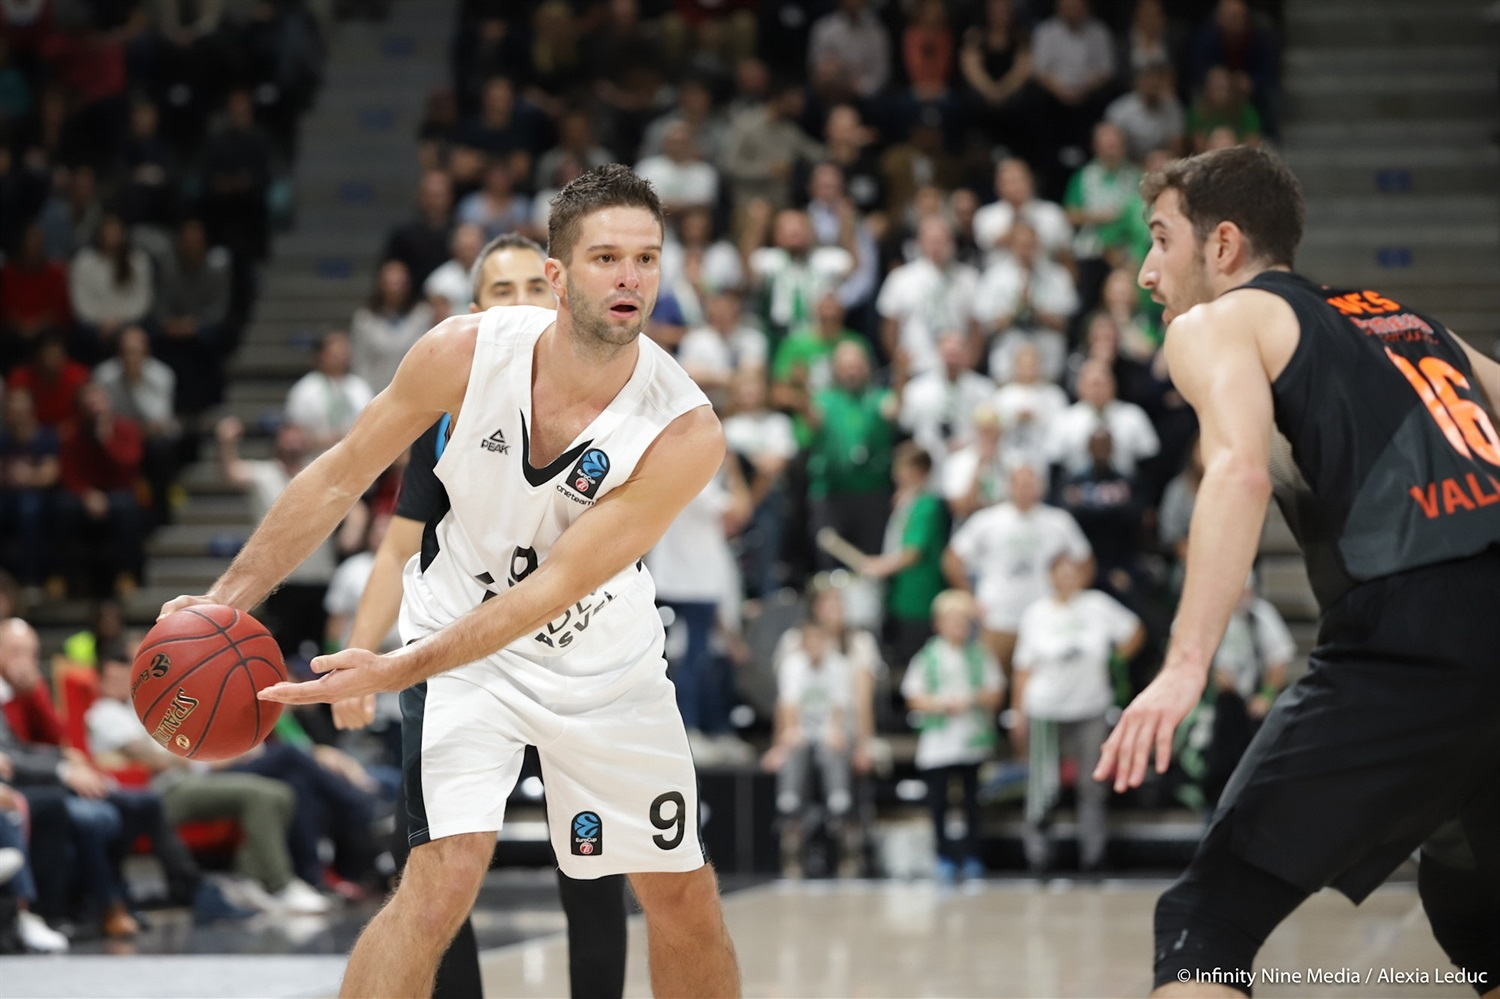 Mantas Kalnietis - LDLC ASVEL Villeurbanne (photo Infinity Nine Media - Alexia Leduc) - EC18